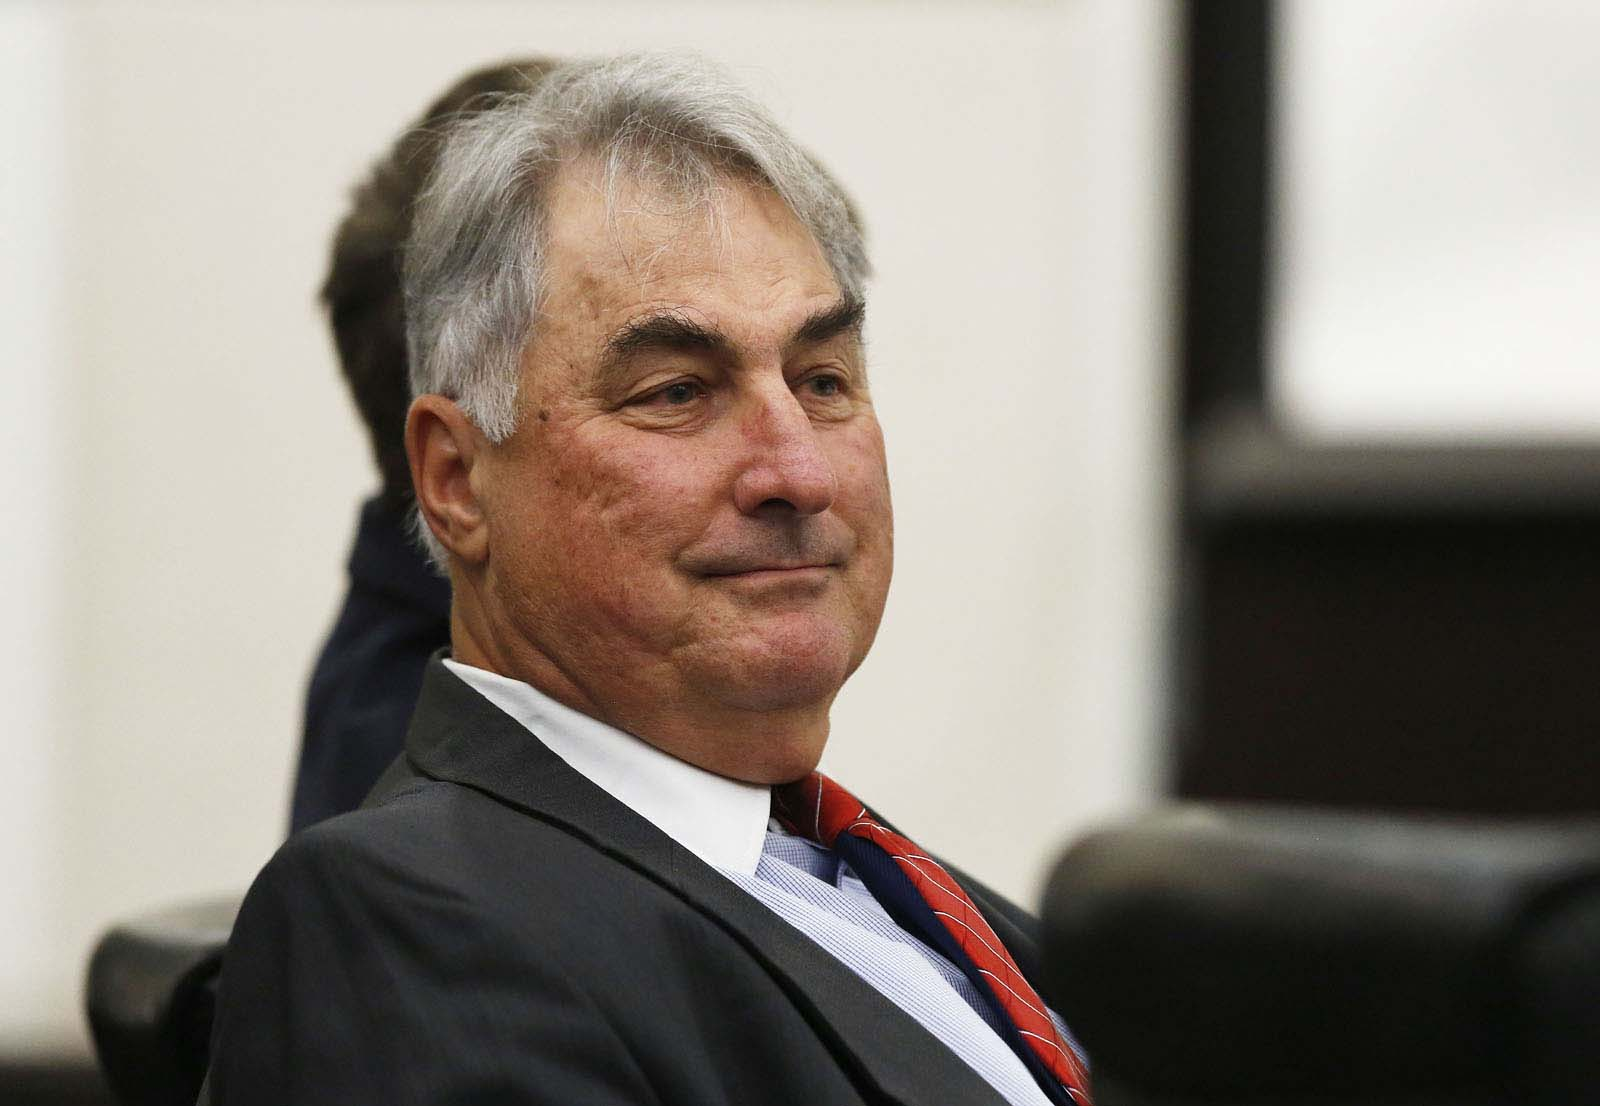 Defense attorney Stephen Berntstein following his cross examination of Levy County inmate Michael Angelo during Pedro Bravo's murder trial in courtroom 1B of the Alachua County Criminal Justice Center Wednesday, August 13, 2014.  Bravo is accused of killing University of Florida student Christian Aguilar.  (Doug Finger/The Gainesville Sun/Pool)